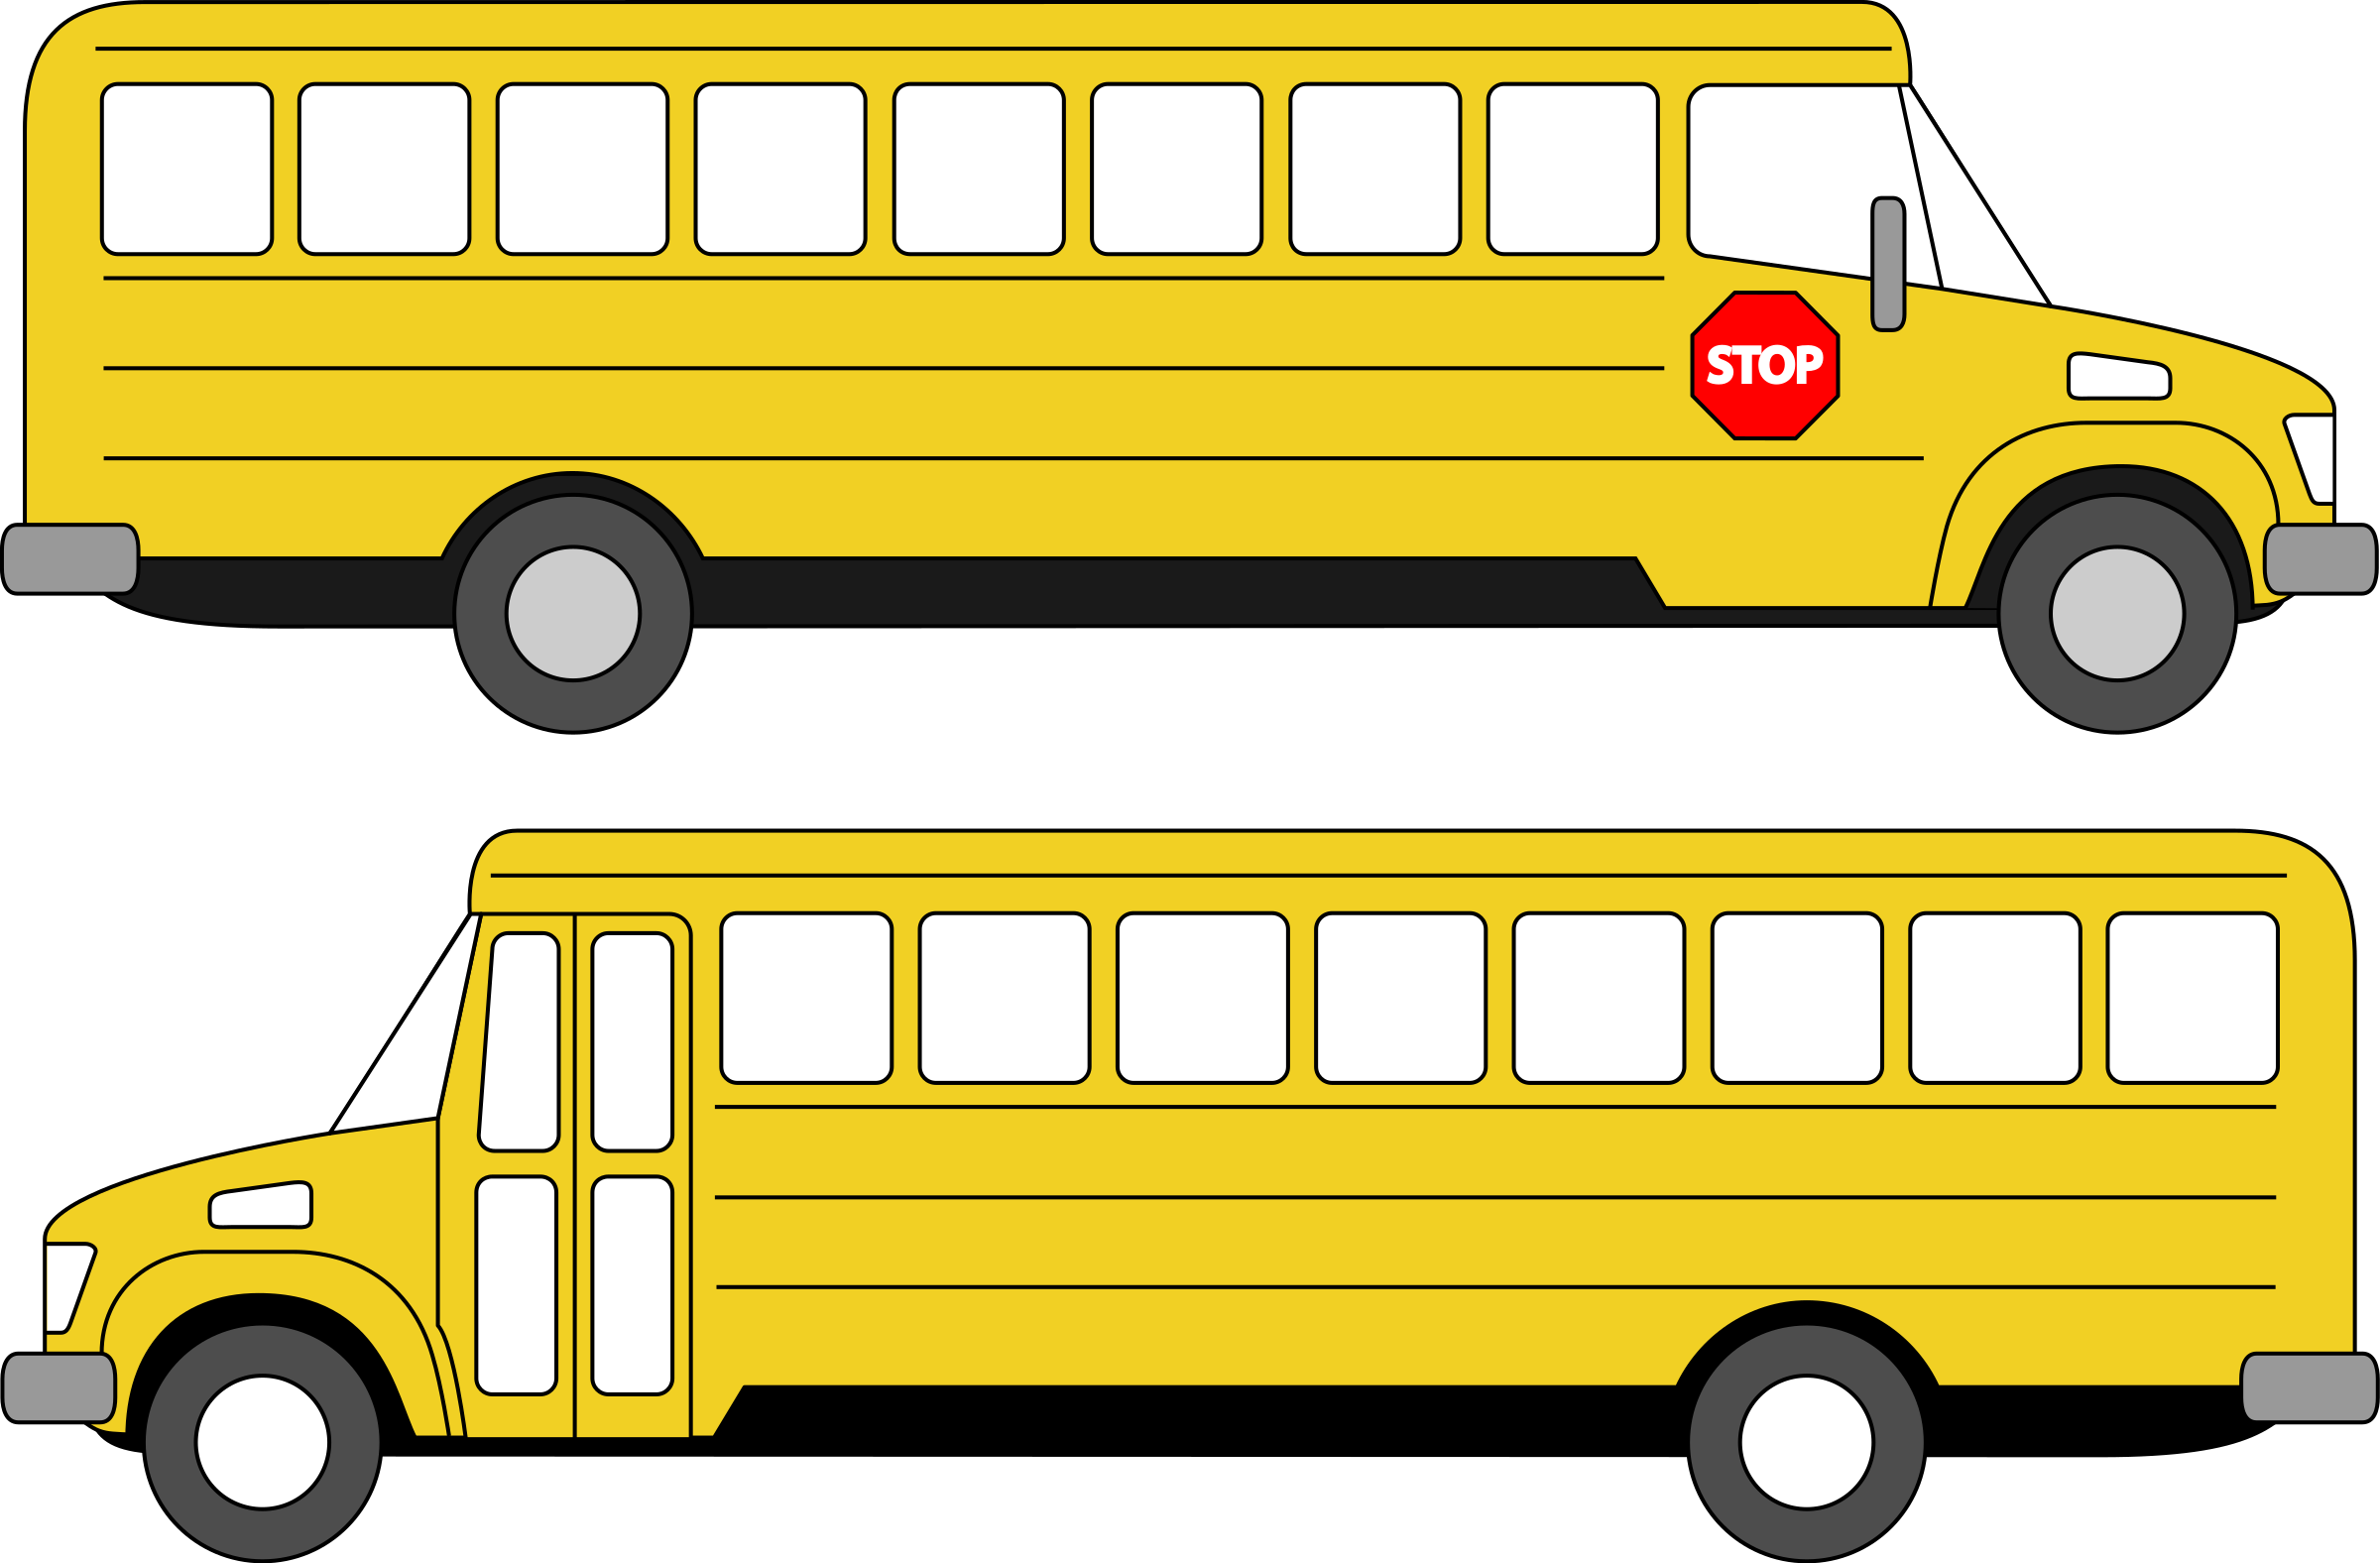 Clipart of a school bus royalty free library Clipart - School bus royalty free library